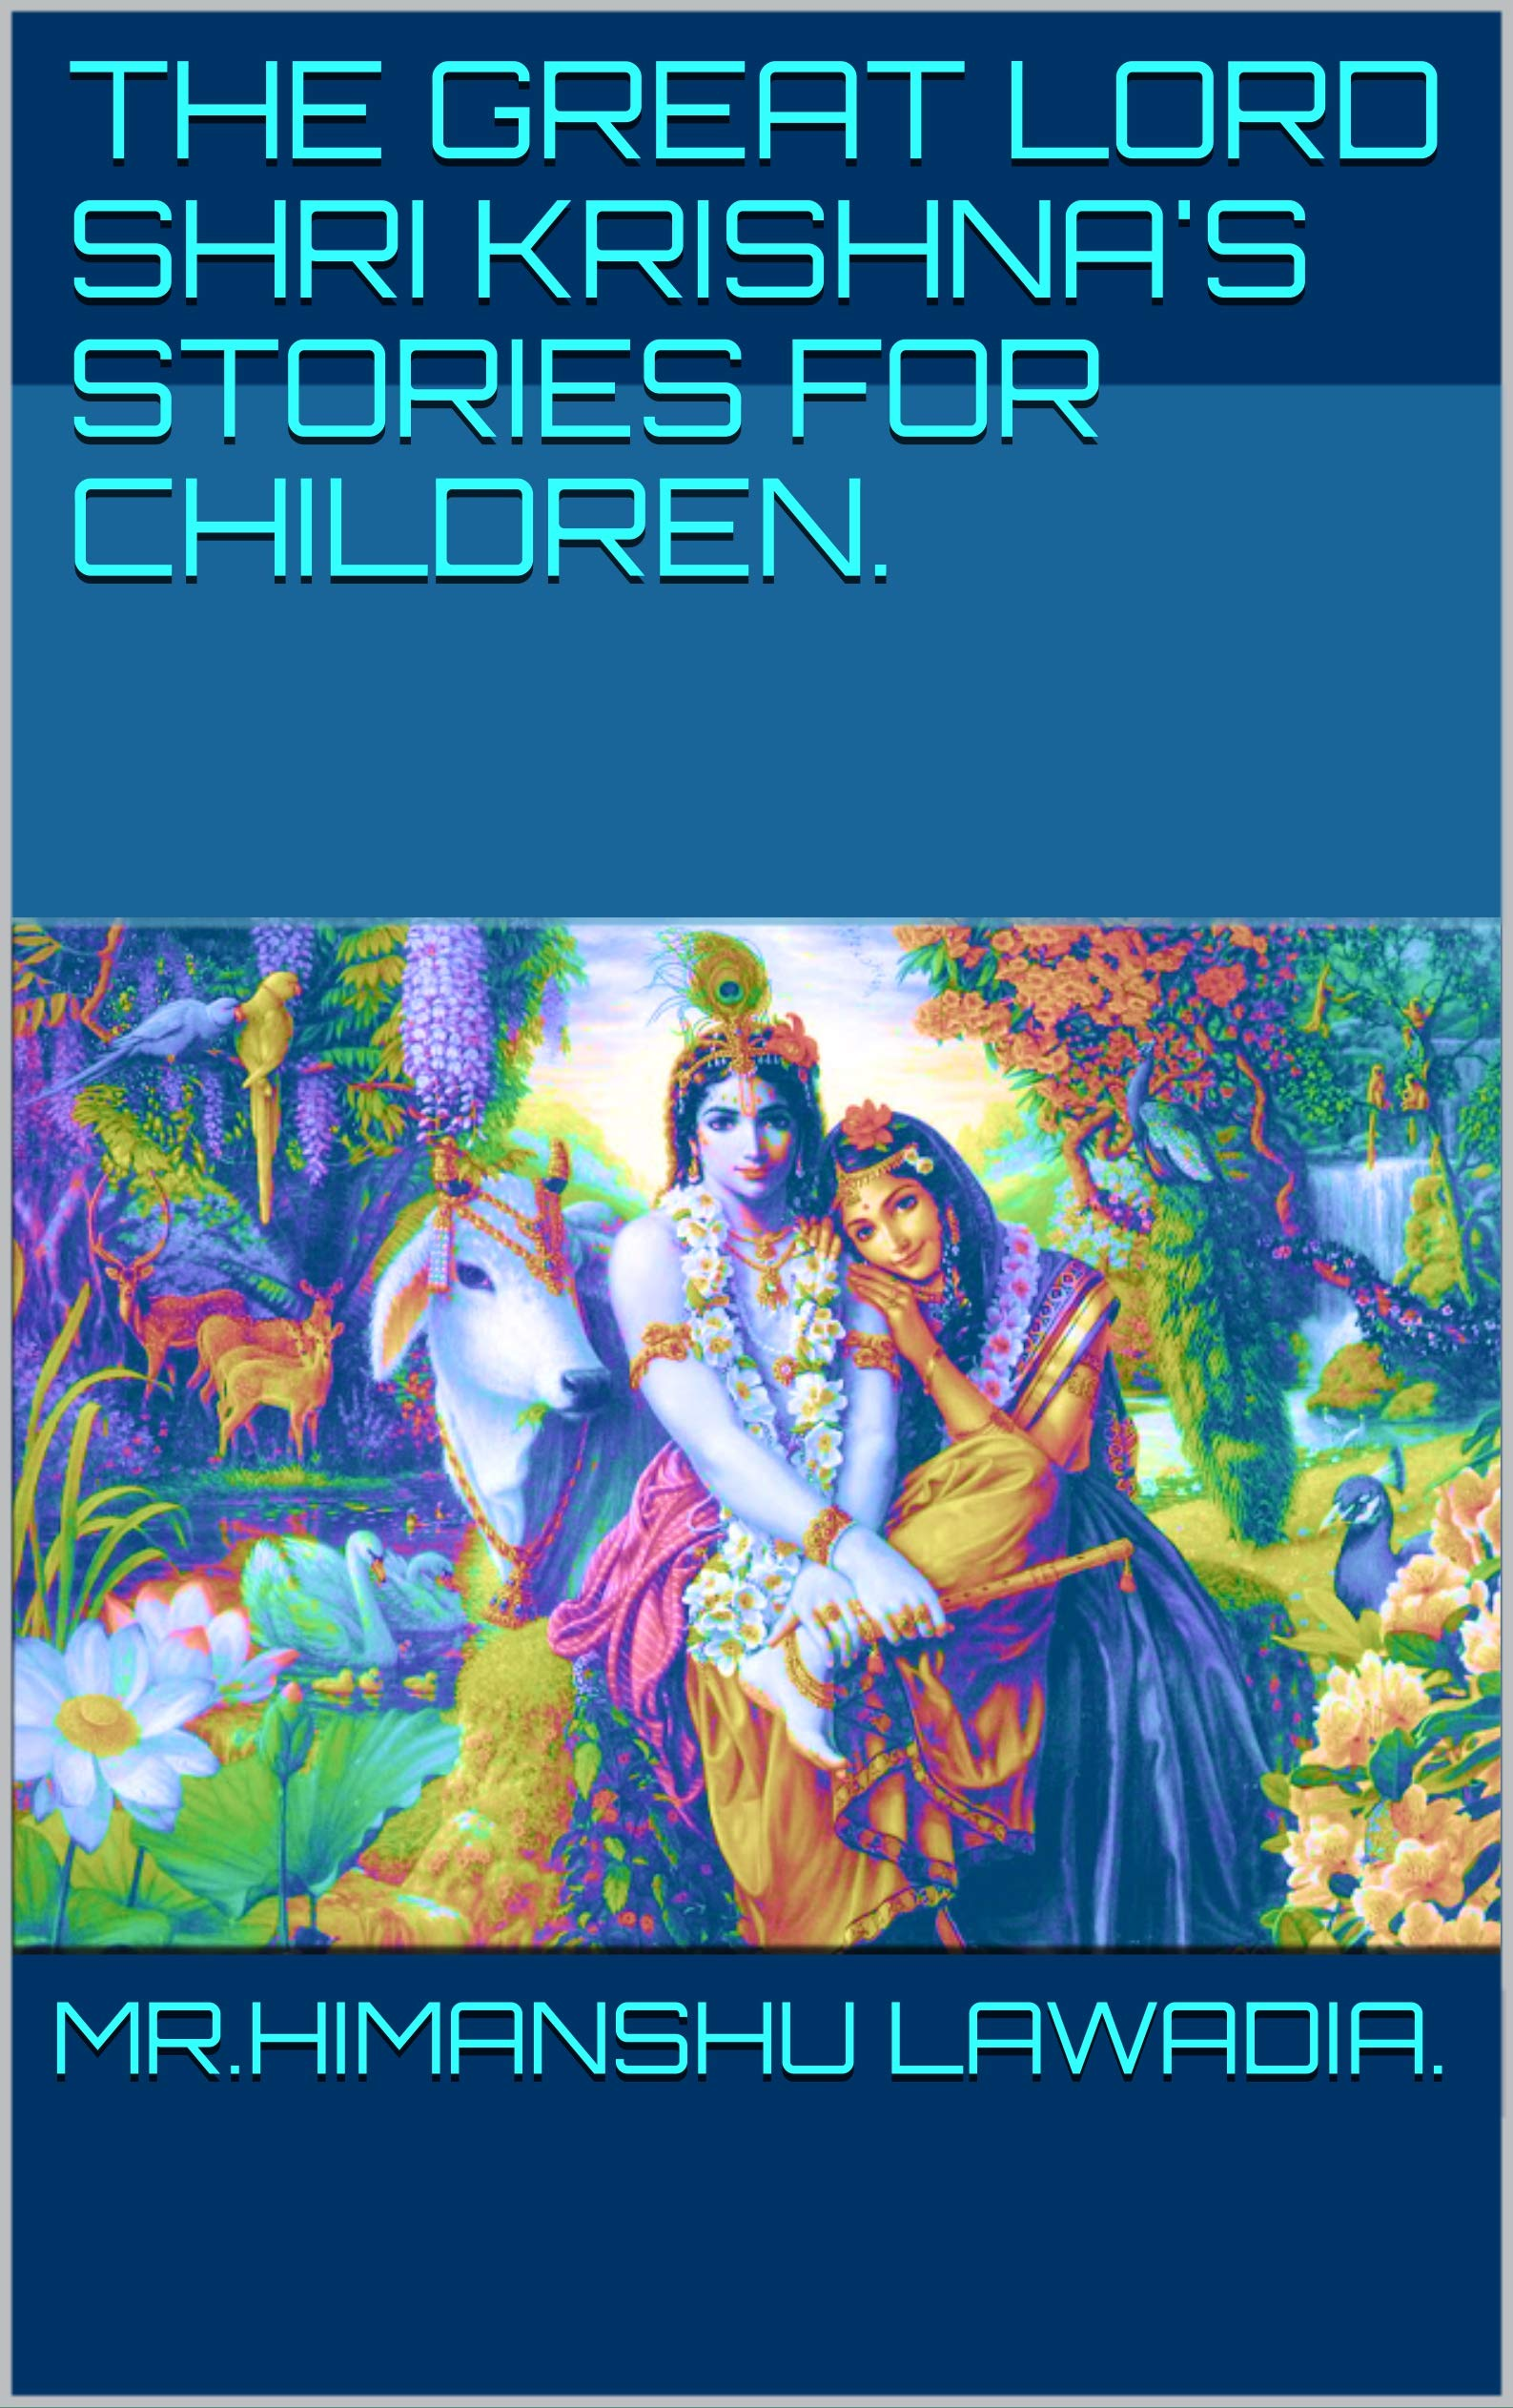 The great lord shri krishna's stories for children.